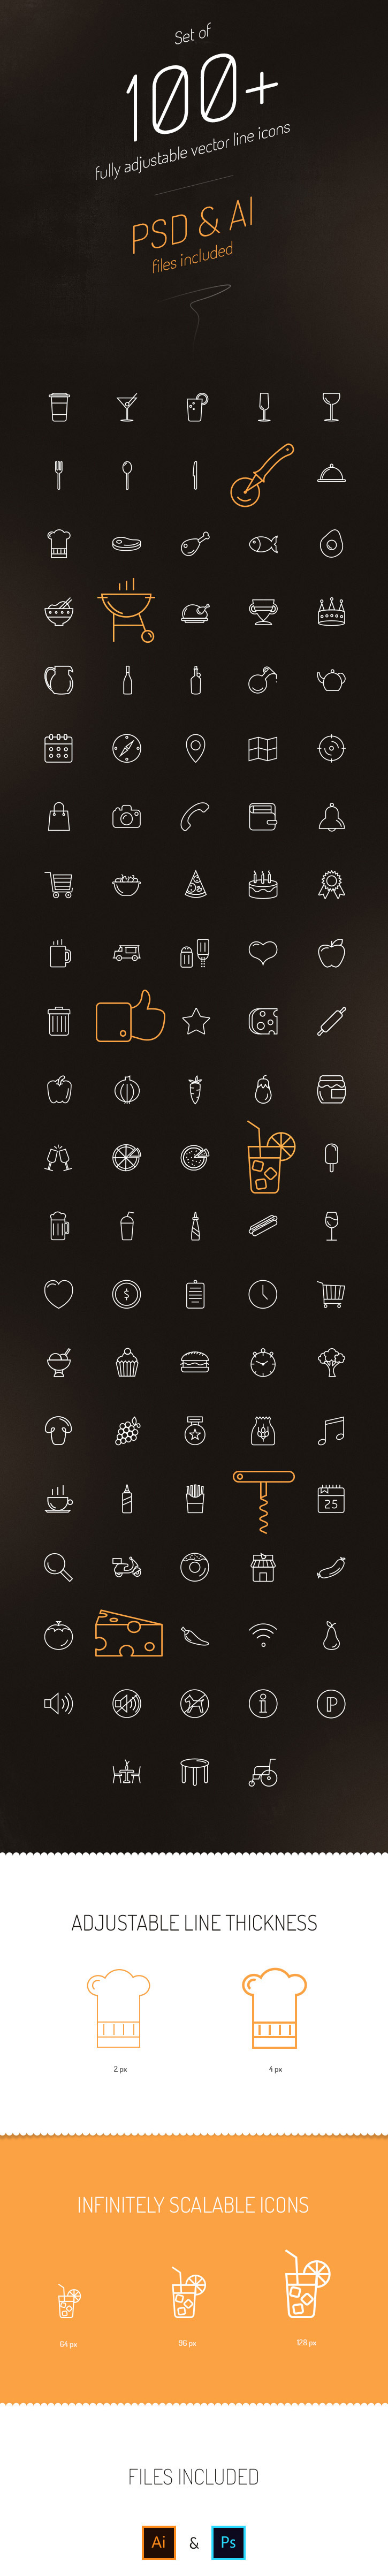 100-free-line-vector-icons